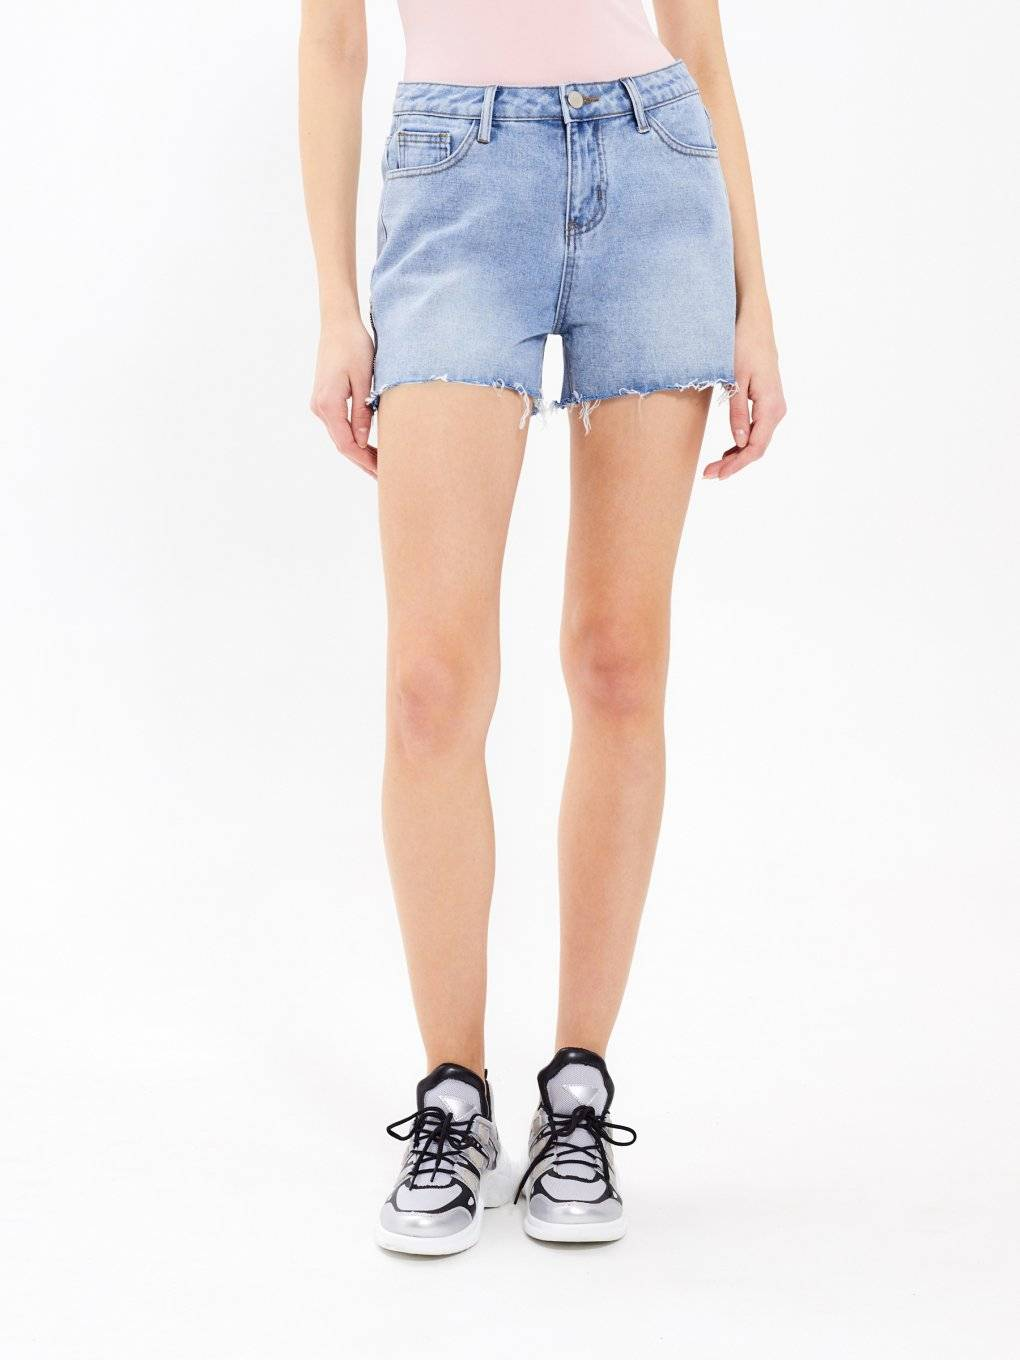 Denim shorts with zippers